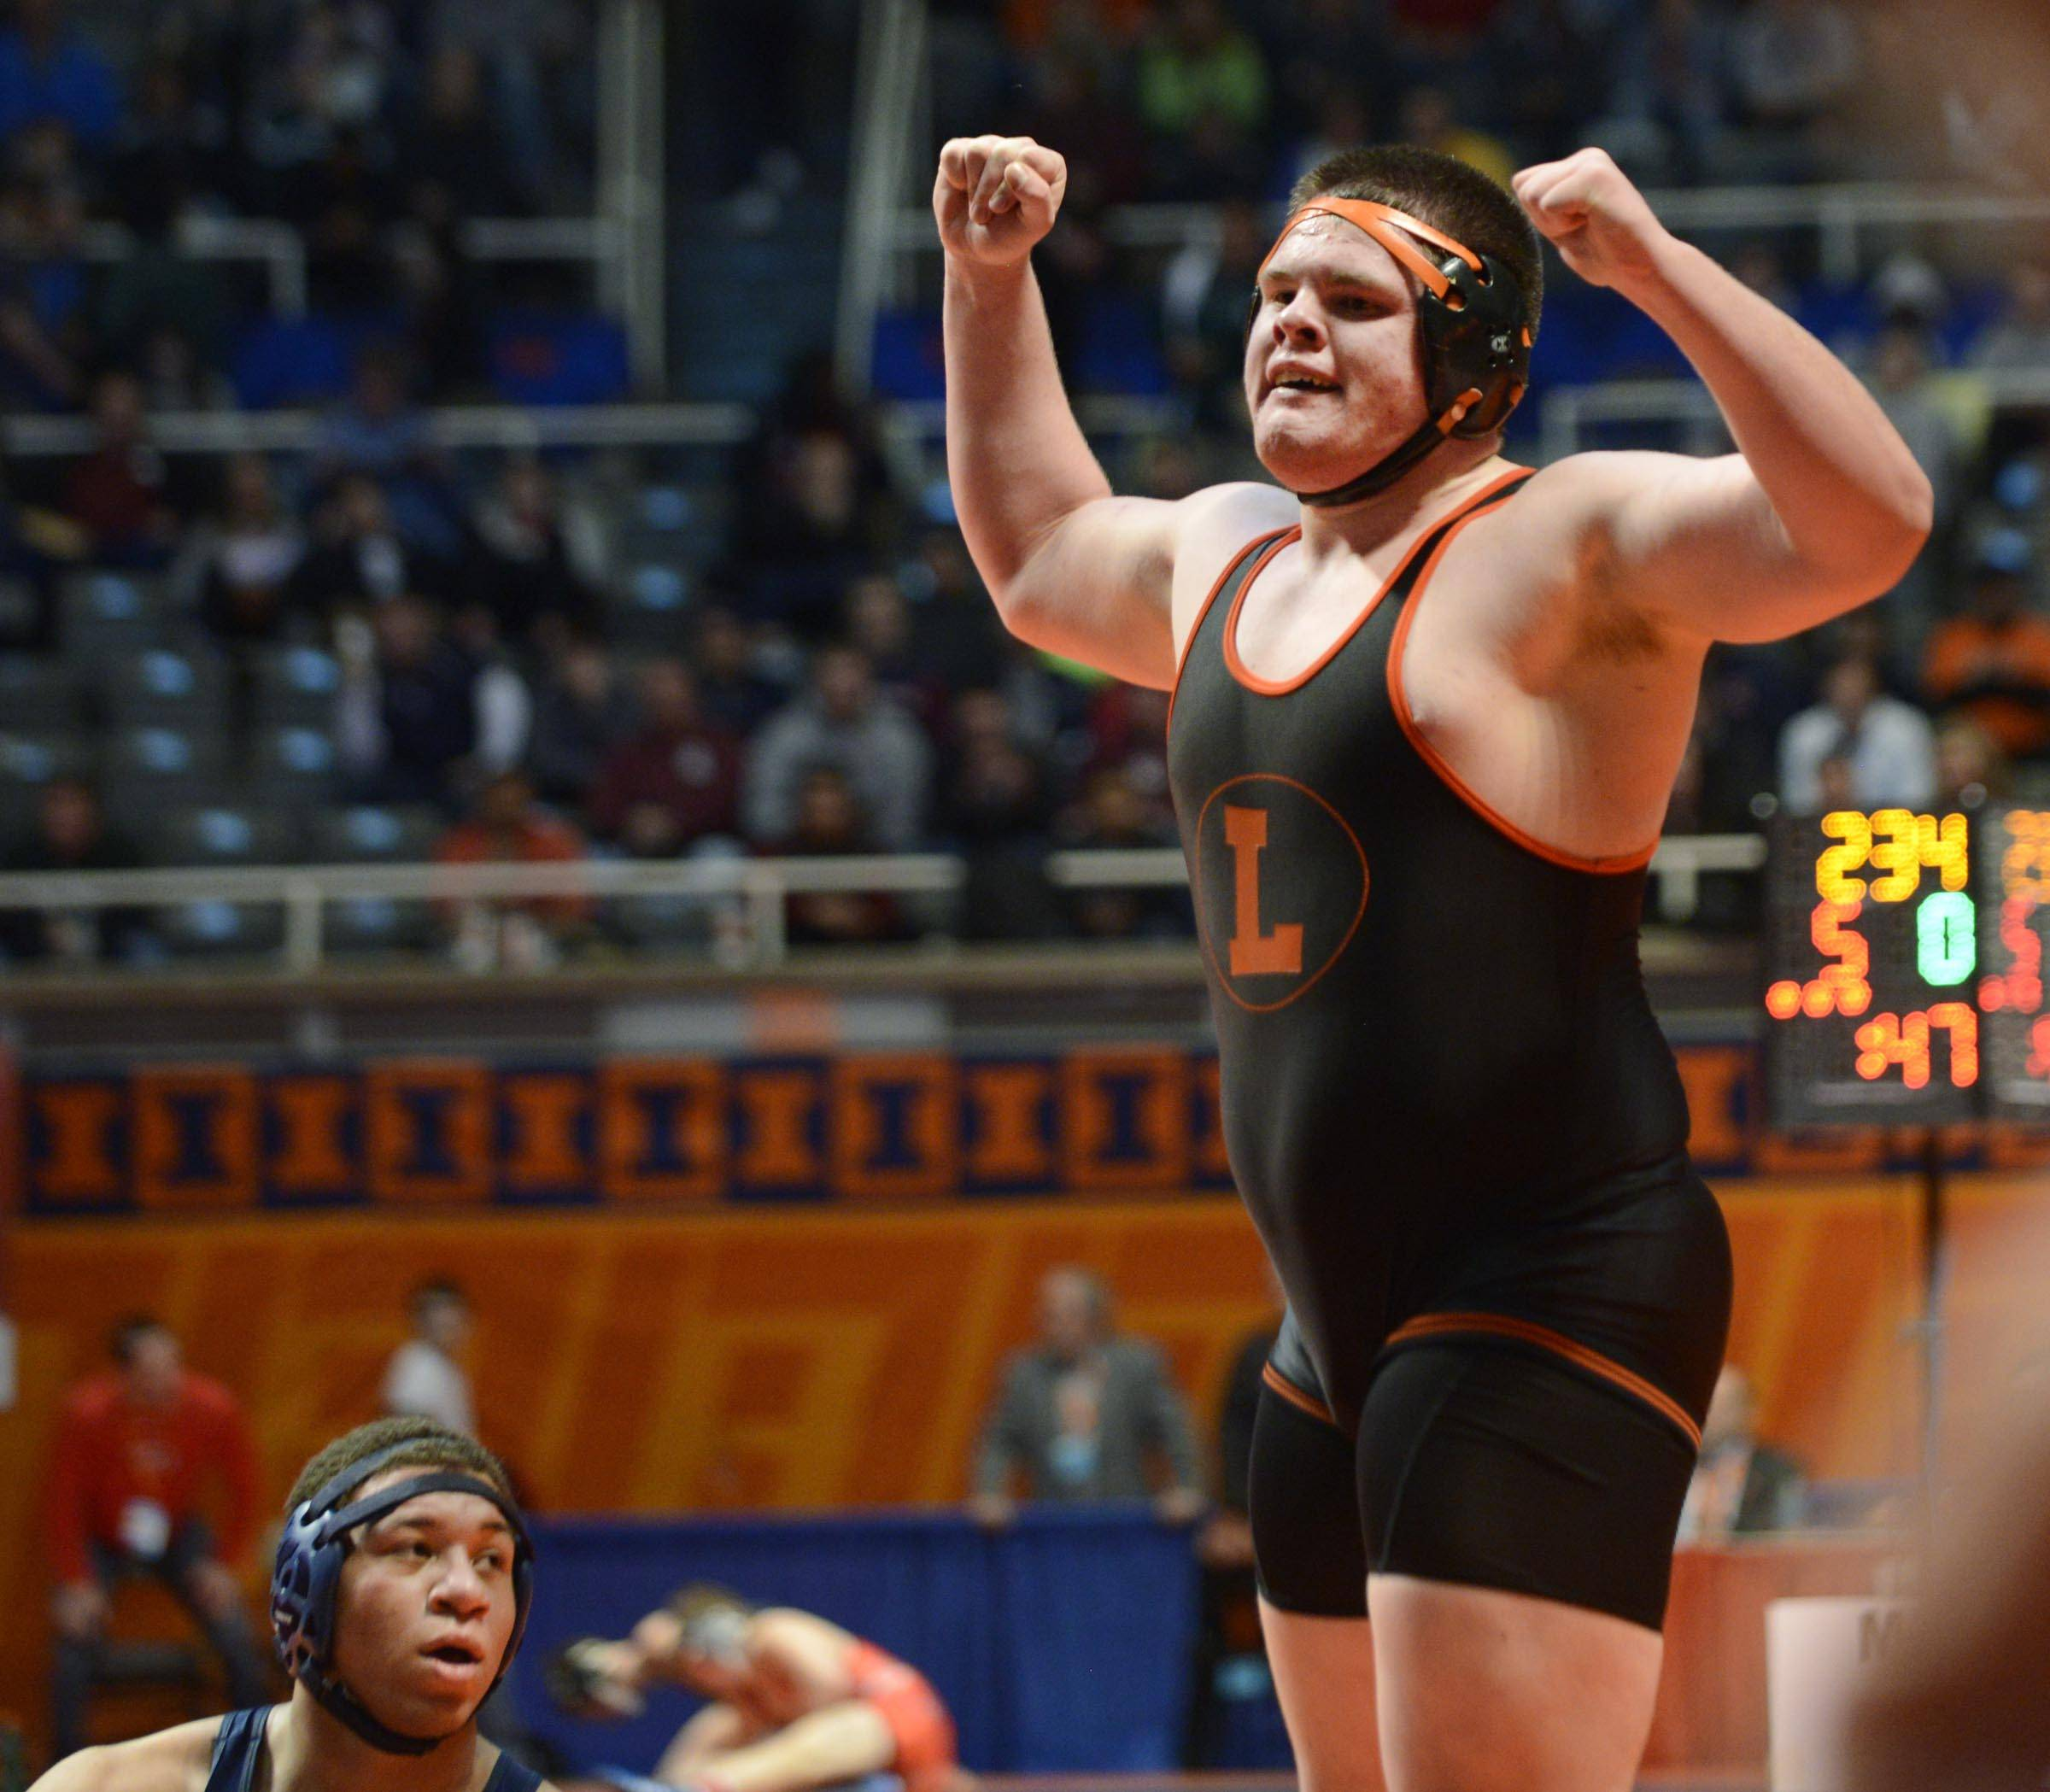 Libertyville's Chris McDermand raises his fists in victory after beating Downers Grove South's Michael Hobbs at Friday's Class 3A 285-pound state quarterfinal match in Champaign.